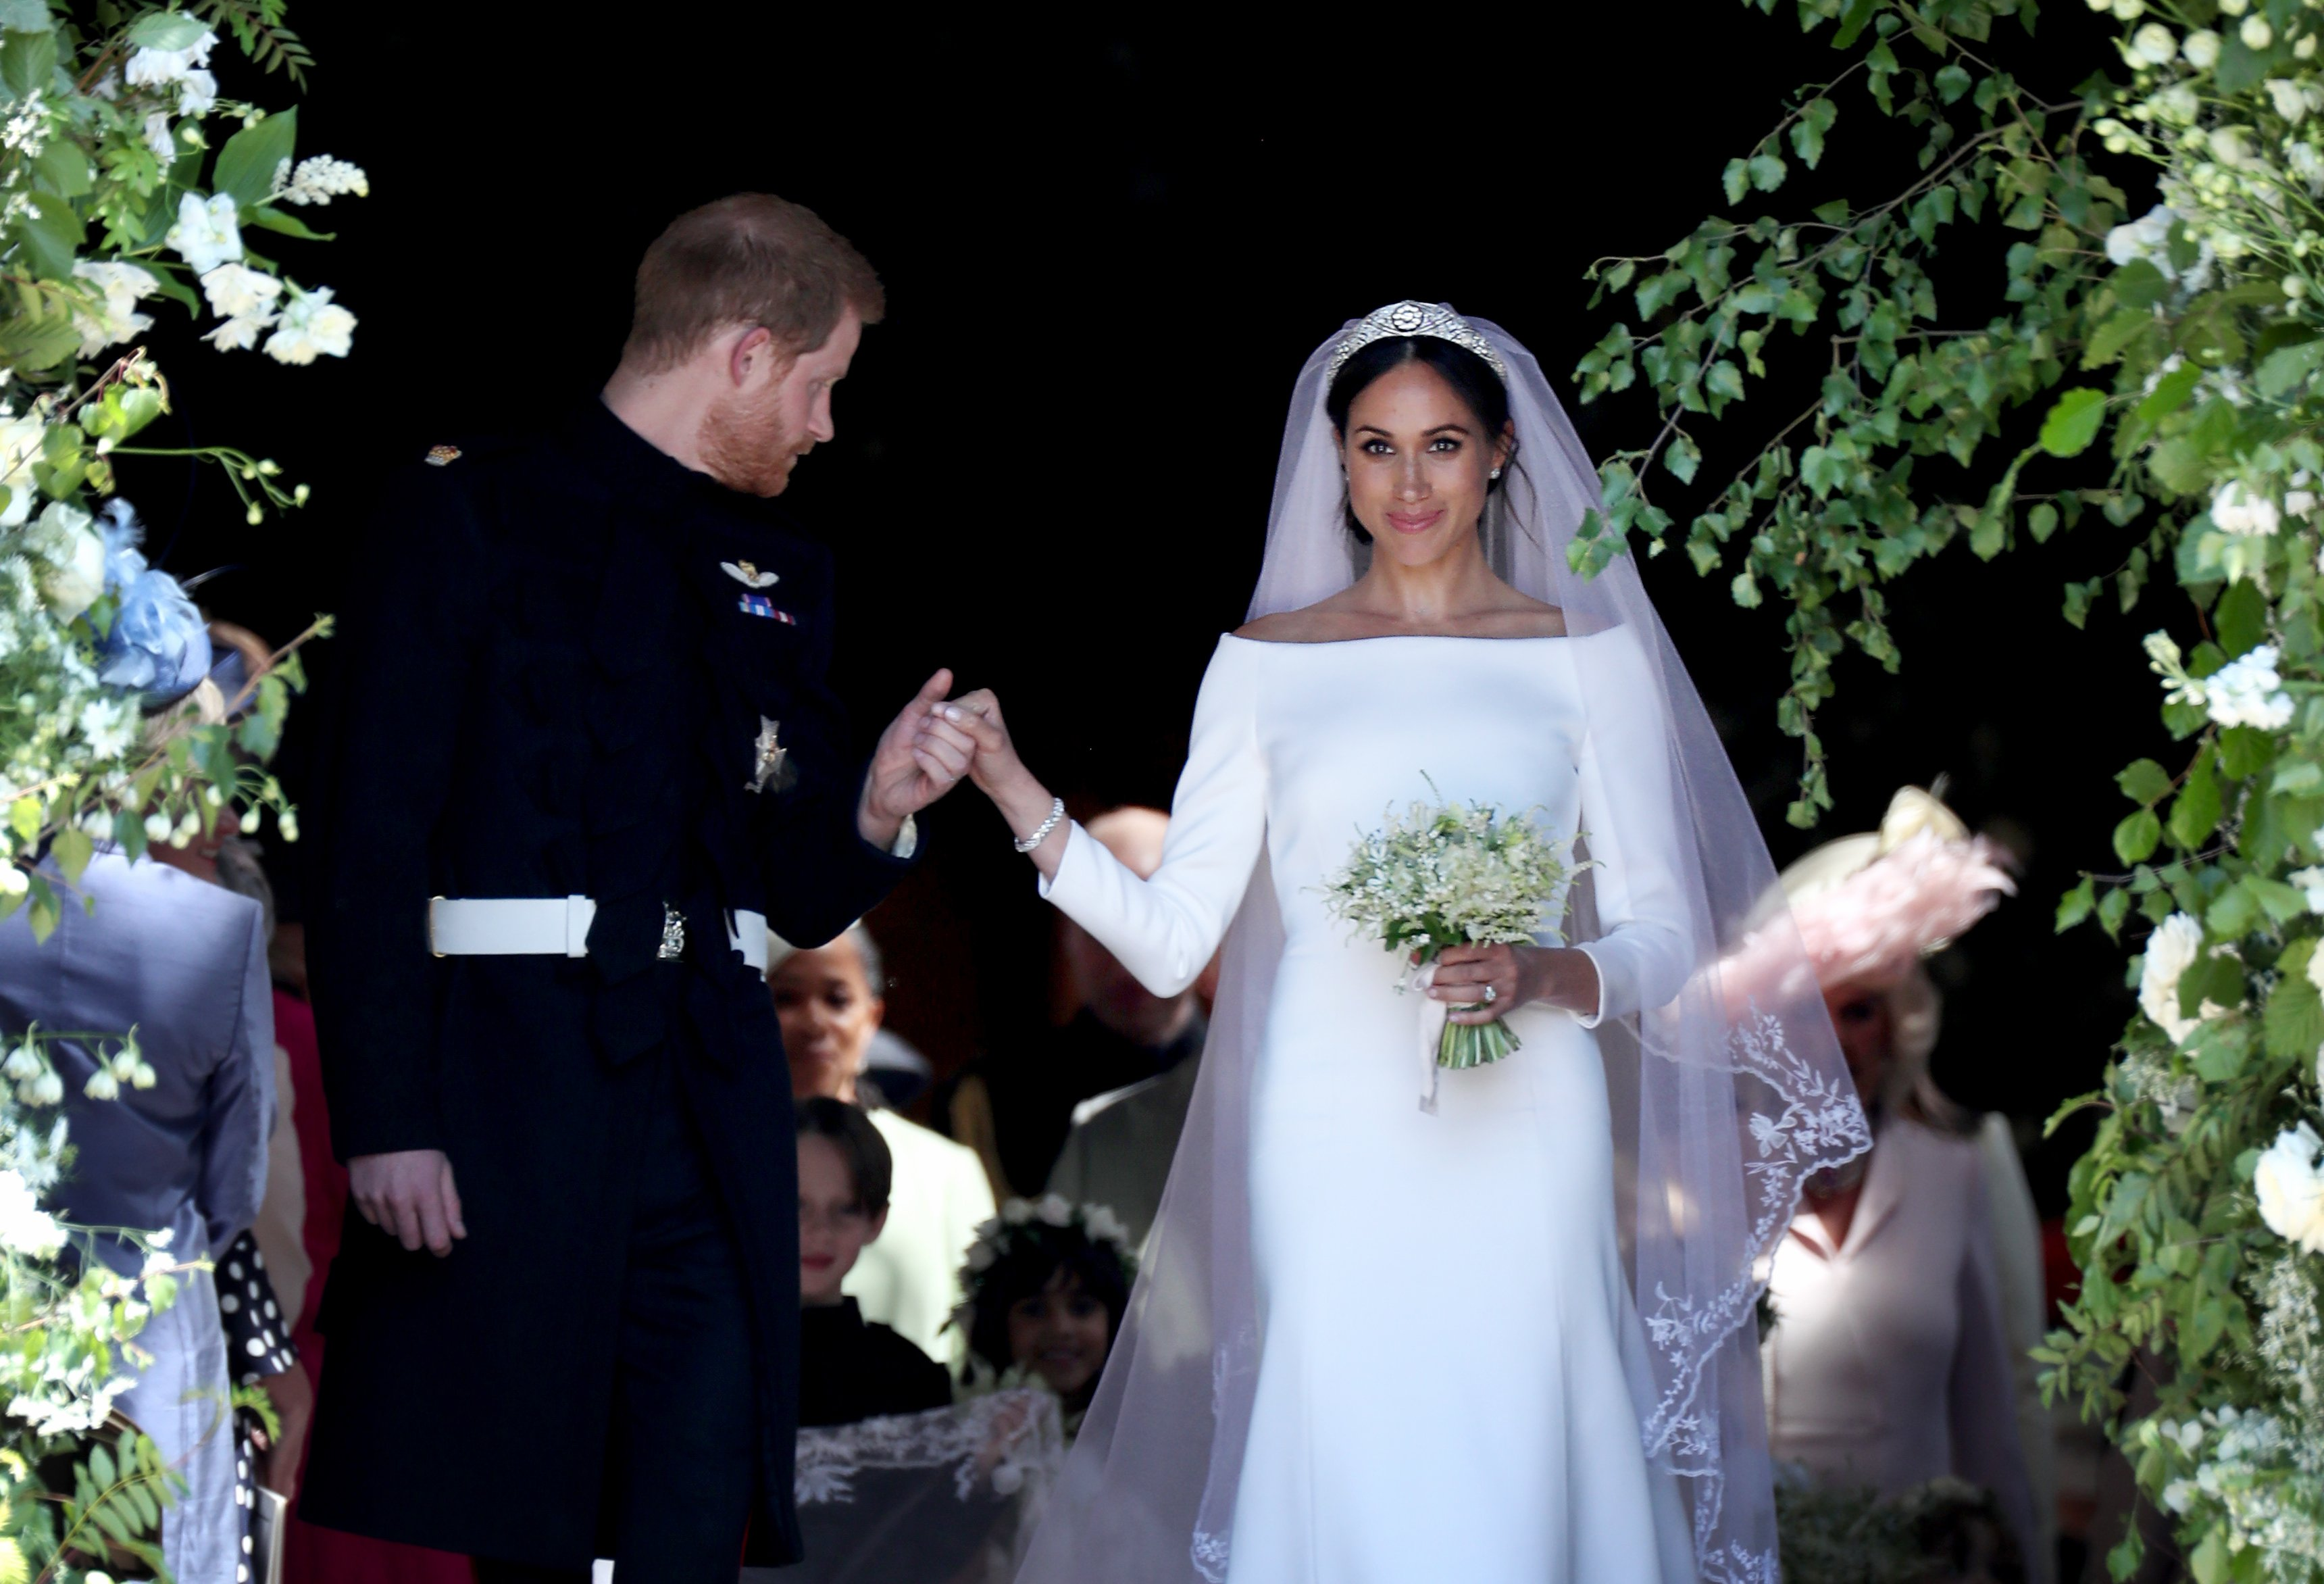 Image Source: Getty Images/Prince Harry and bride to be Meghan Markle